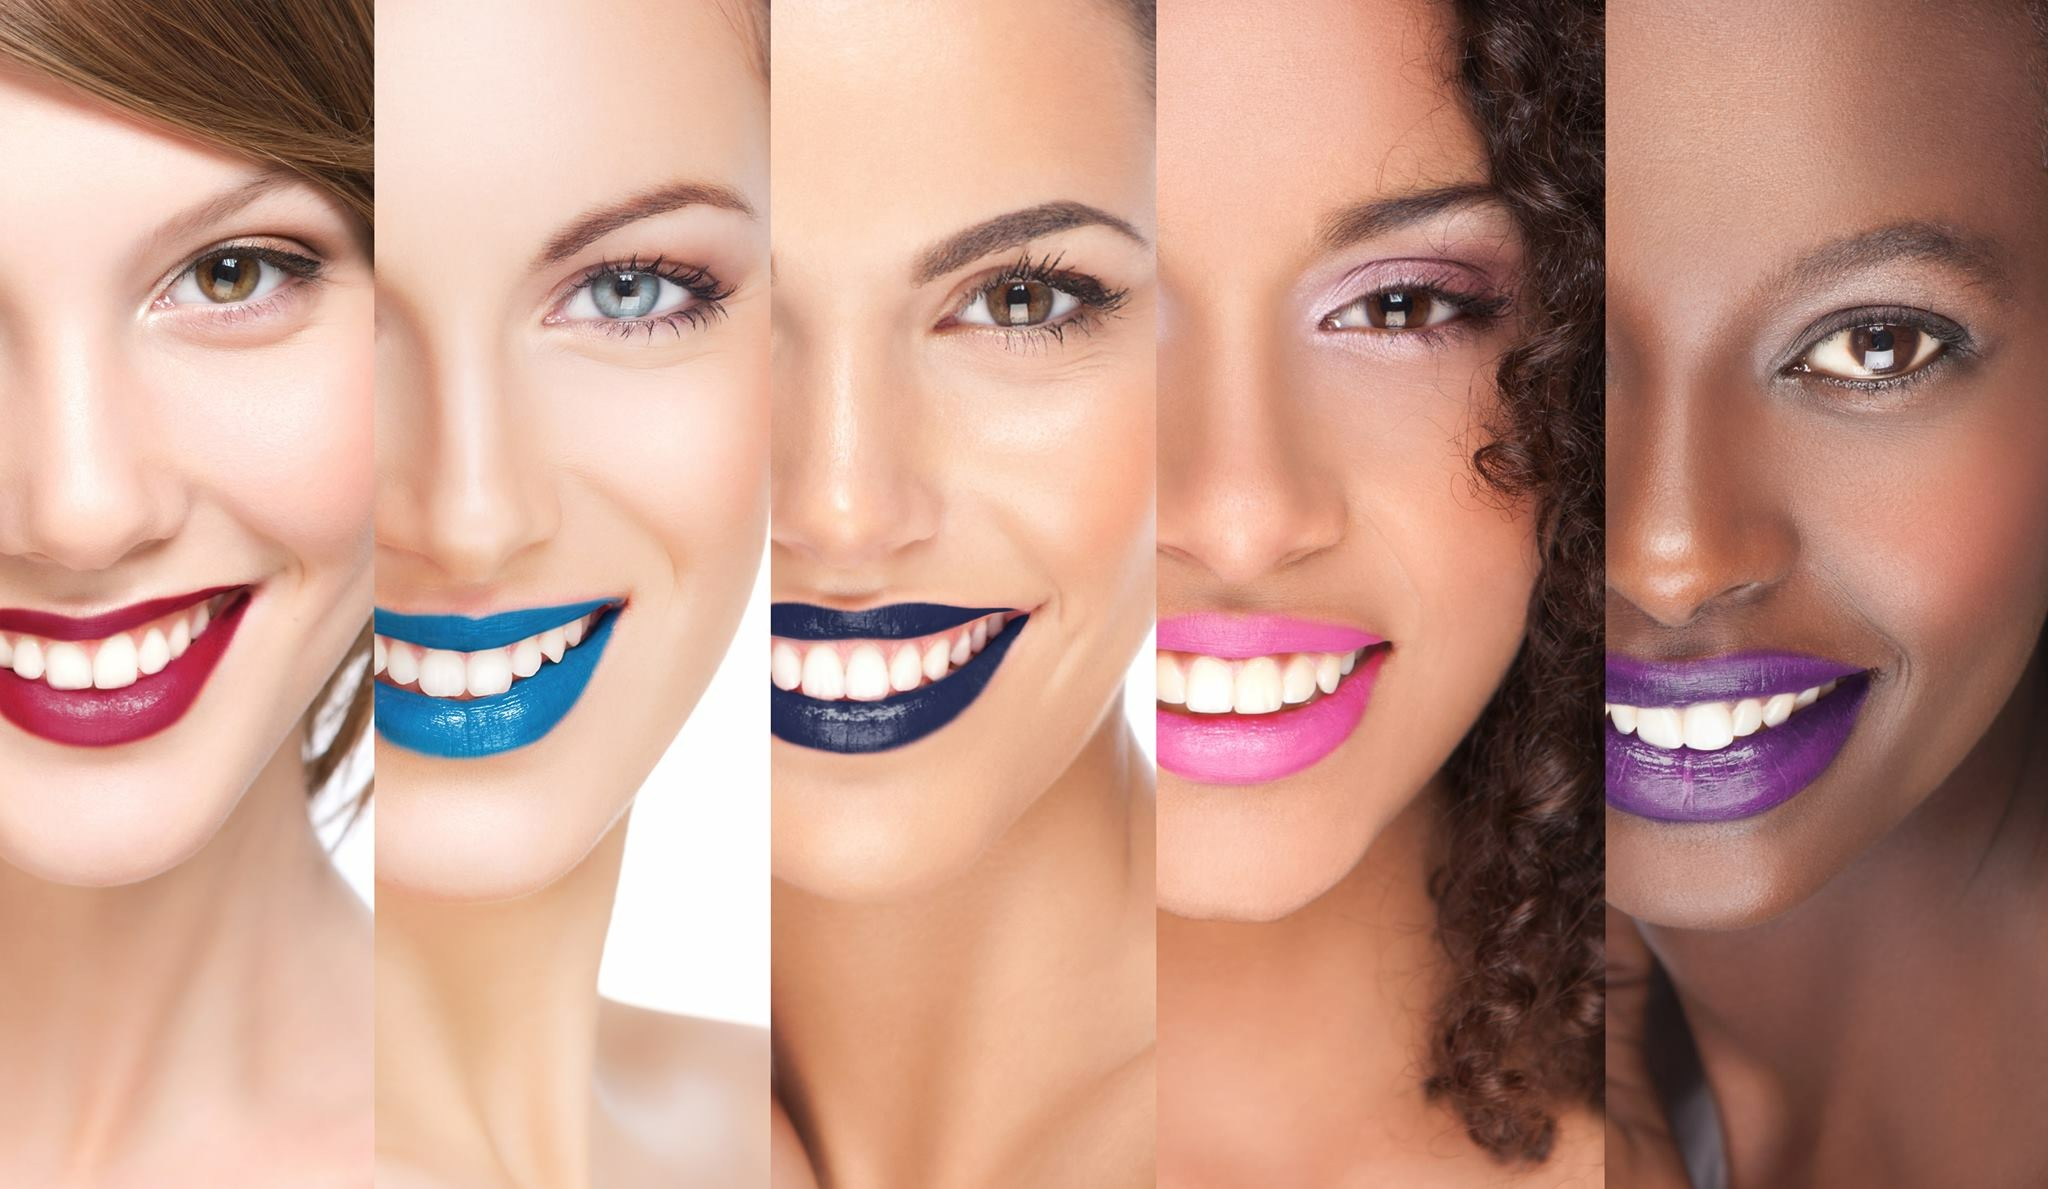 Colors (L to R): Mod Magenta, Skyline, Midnight Muse, Pop Art Pink, Lilac Laquer